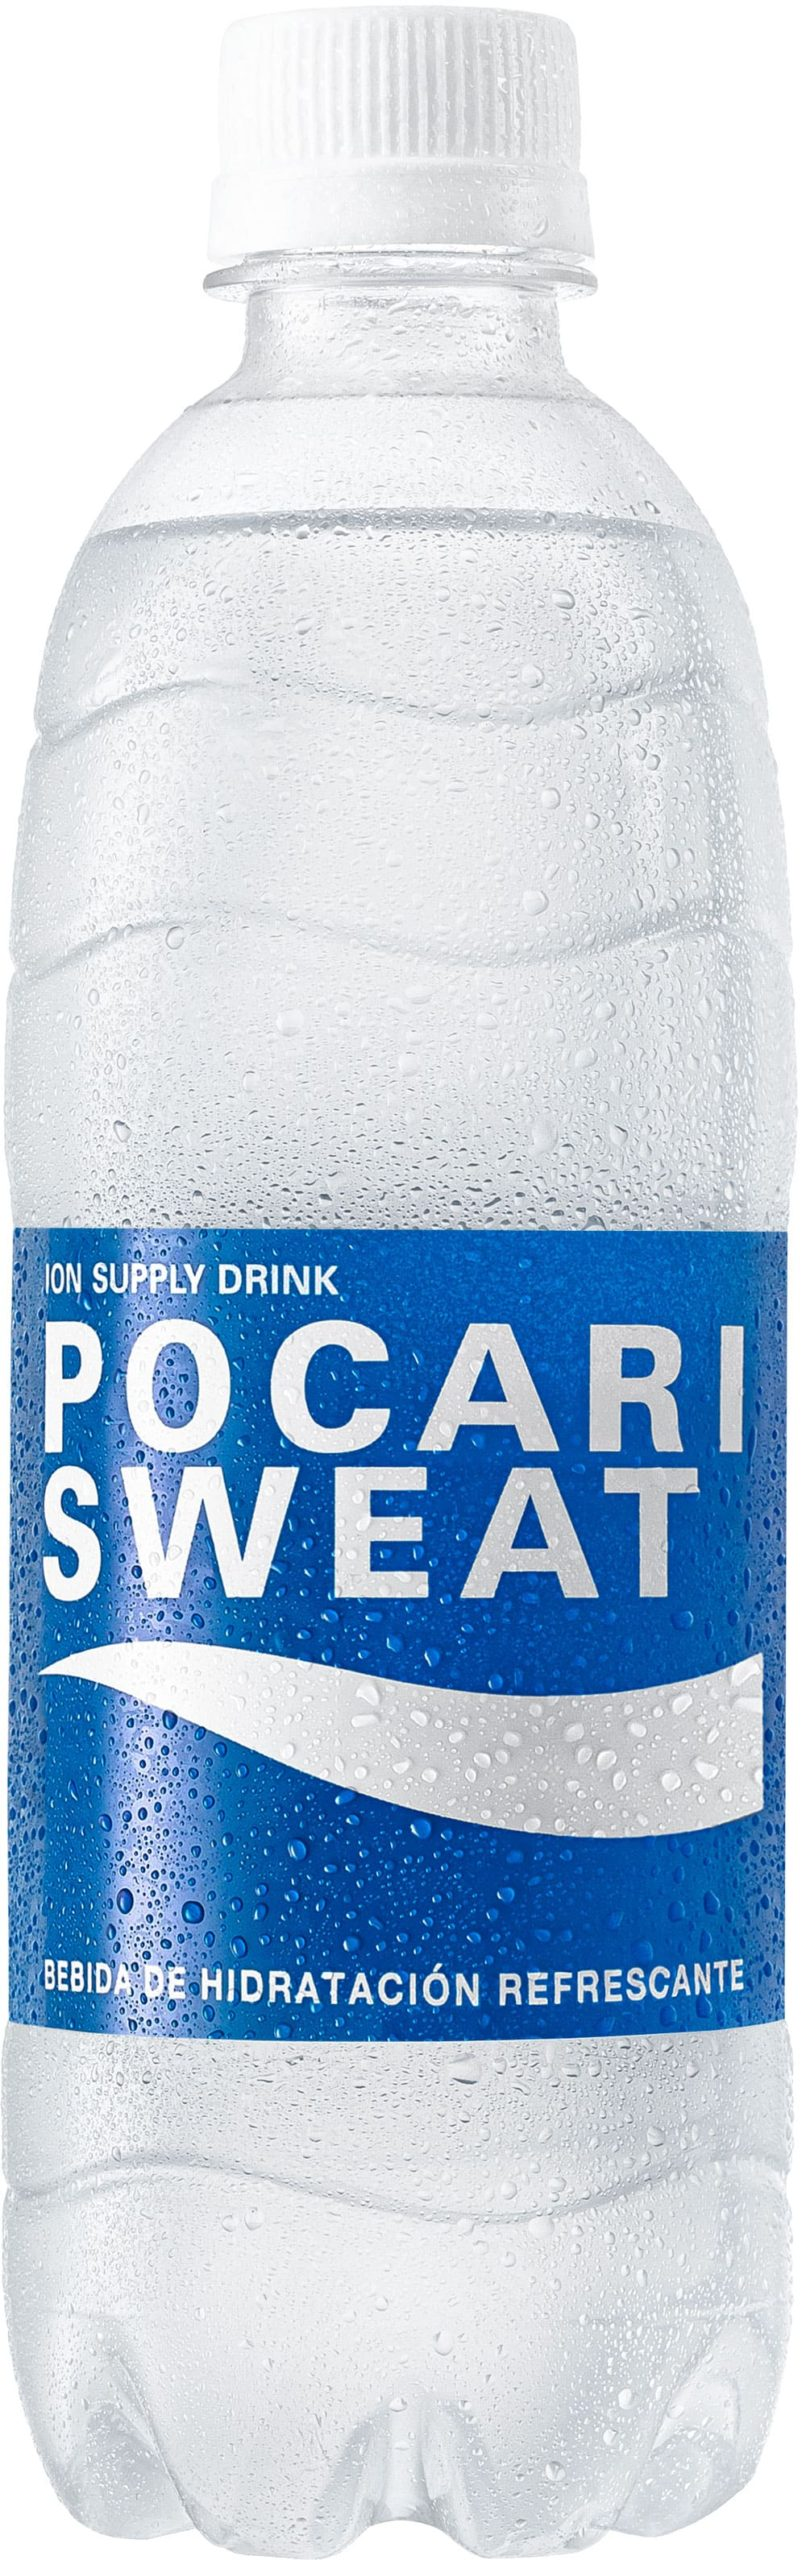 Botella POCARI SWEAT